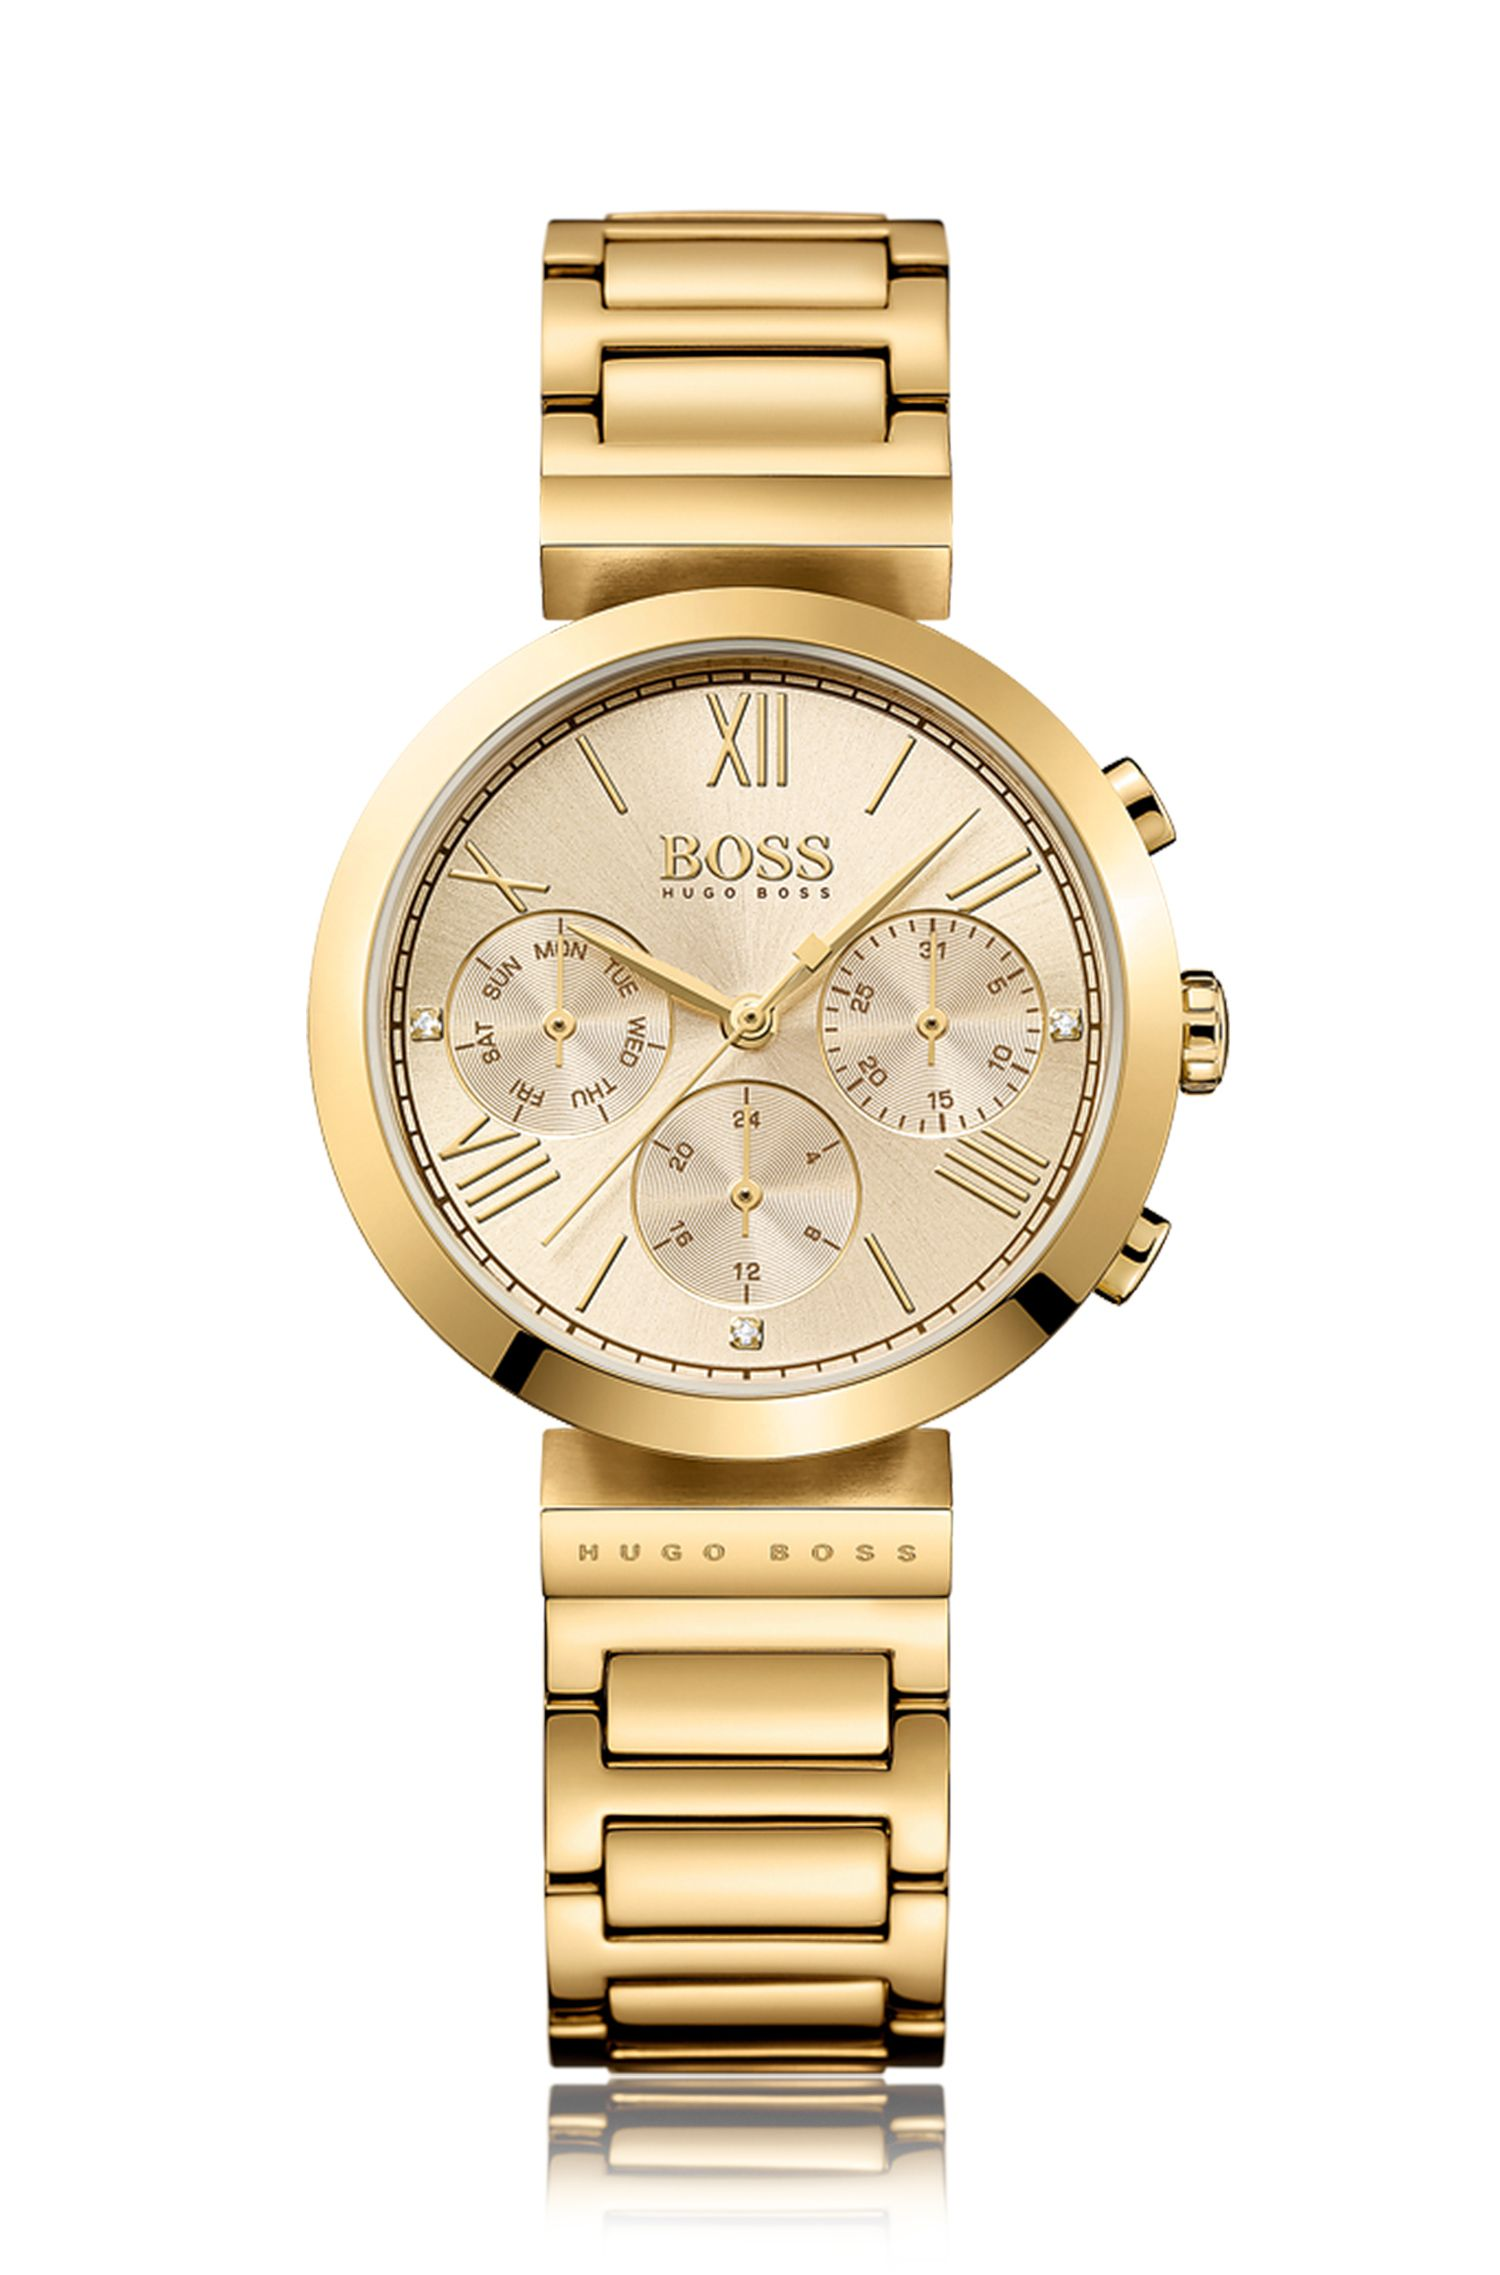 Multi-eye watch in yellow-gold stainless steel with linked bracelet